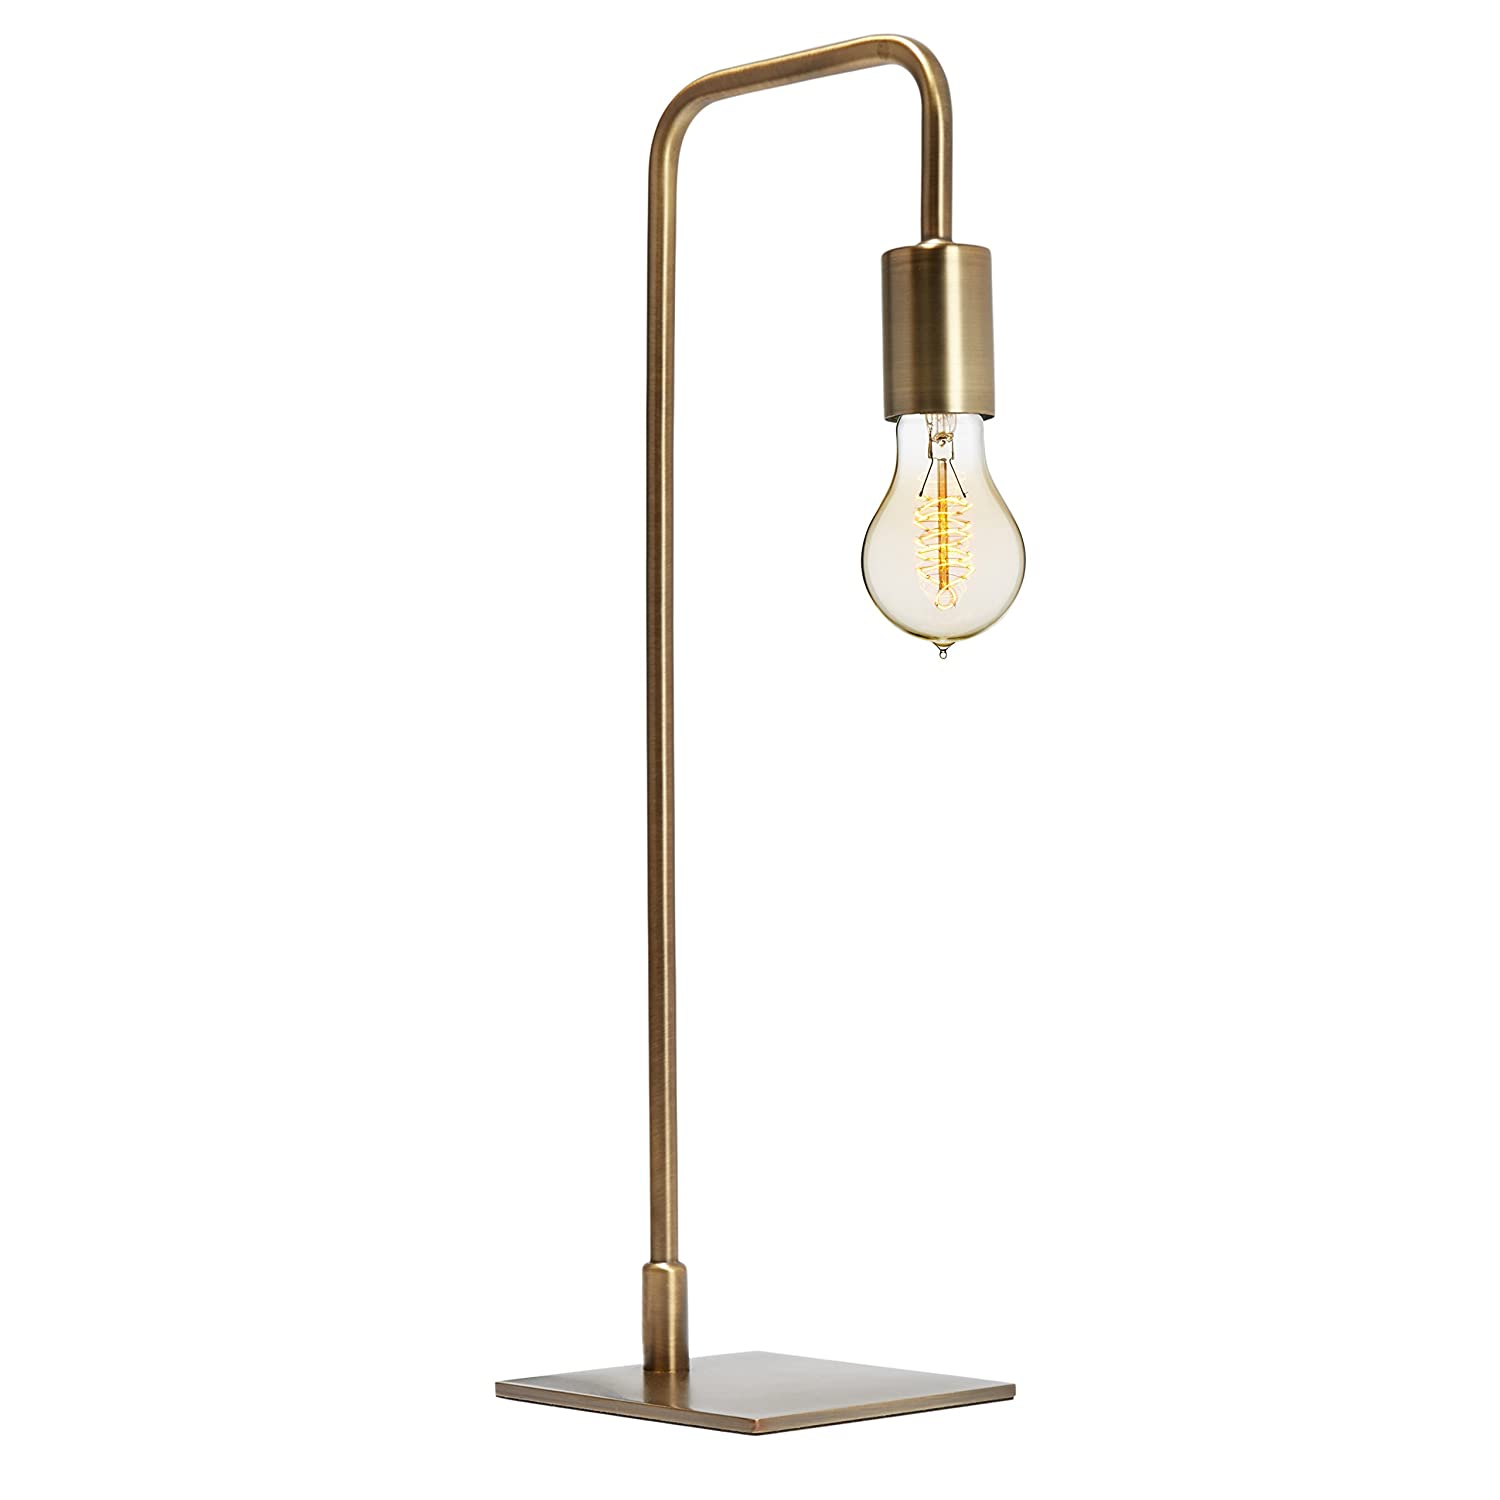 Bronze dimmable accent table lamp with 1 vintage edison style bulb bronze dimmable accent table lamp with 1 vintage edison style bulb plugin brooklyn bulb co hoyt collection inset switch etl listed amazon arubaitofo Choice Image